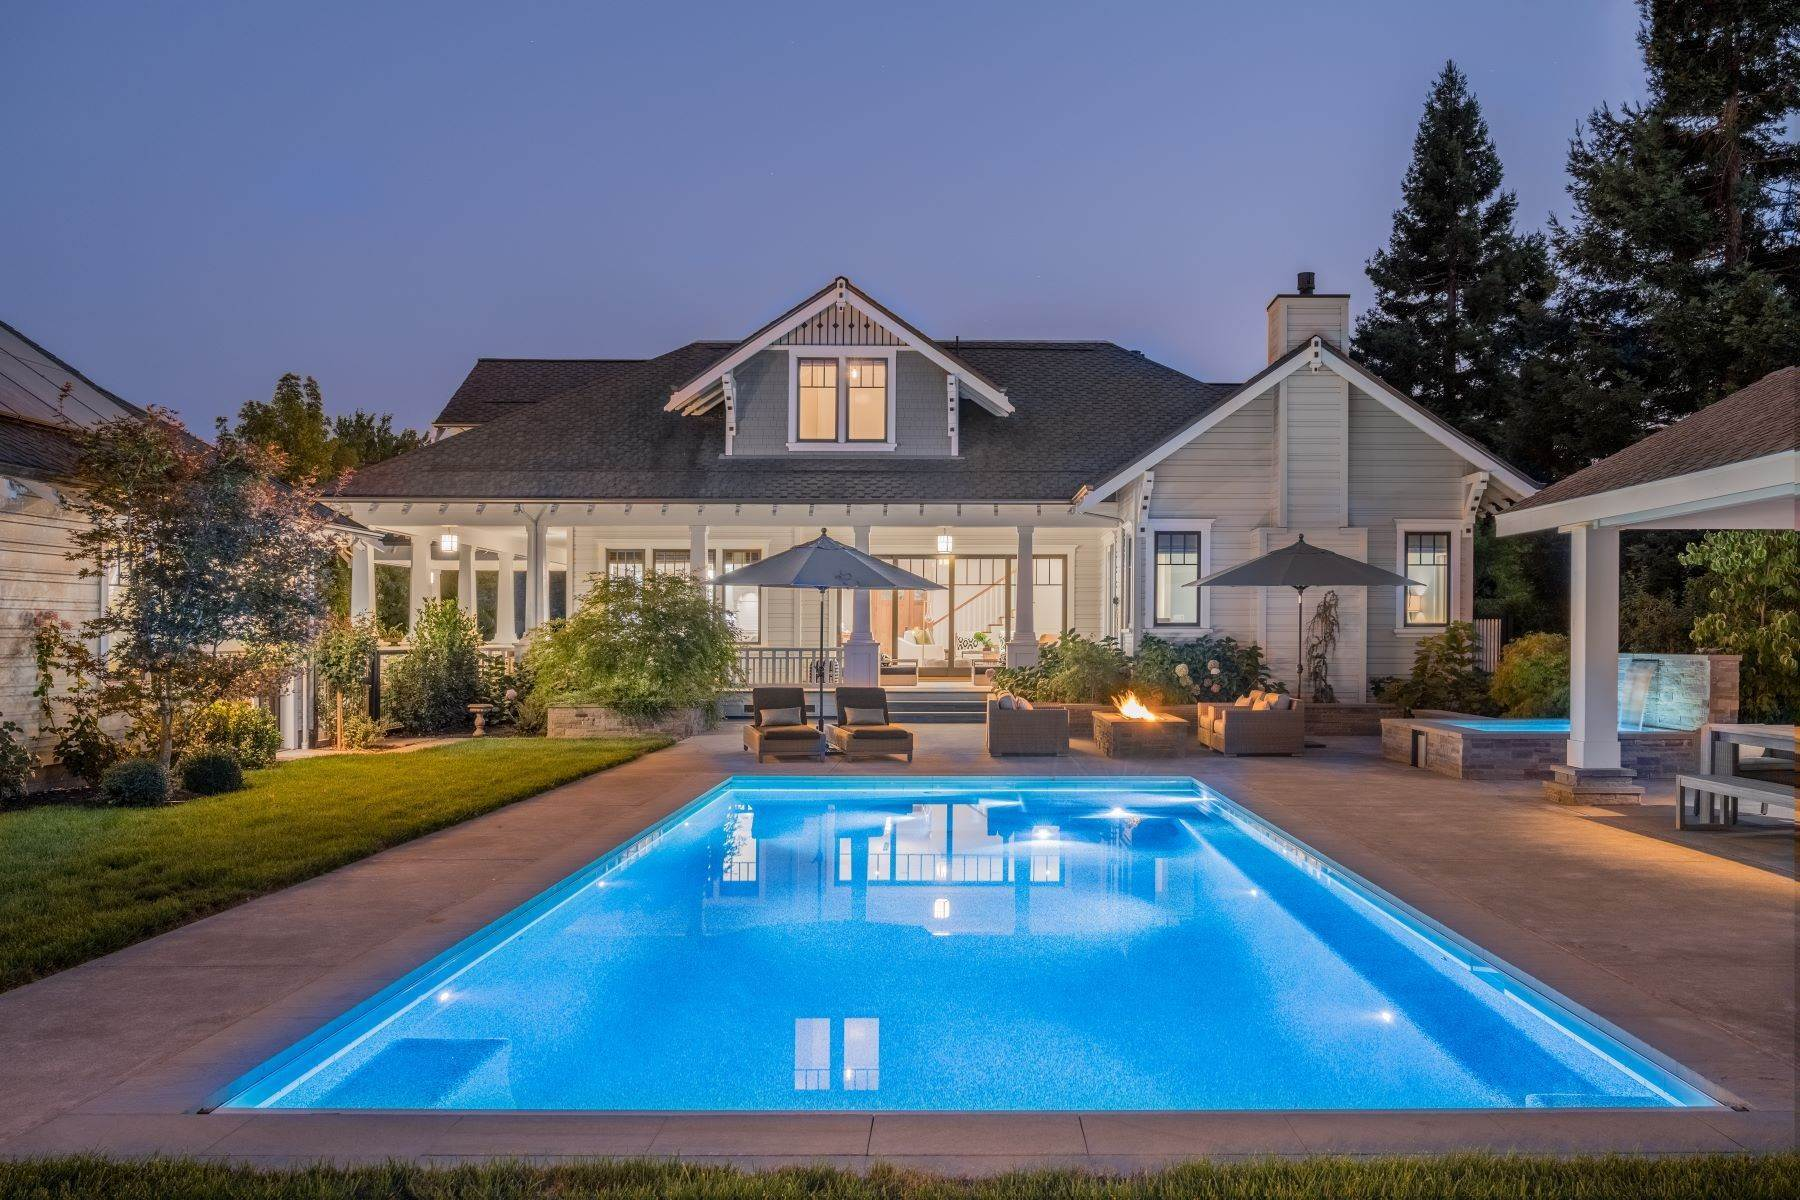 Single Family Homes for Sale at Sonoma In Town 682 William Cunningham Ave Sonoma, California 95476 United States